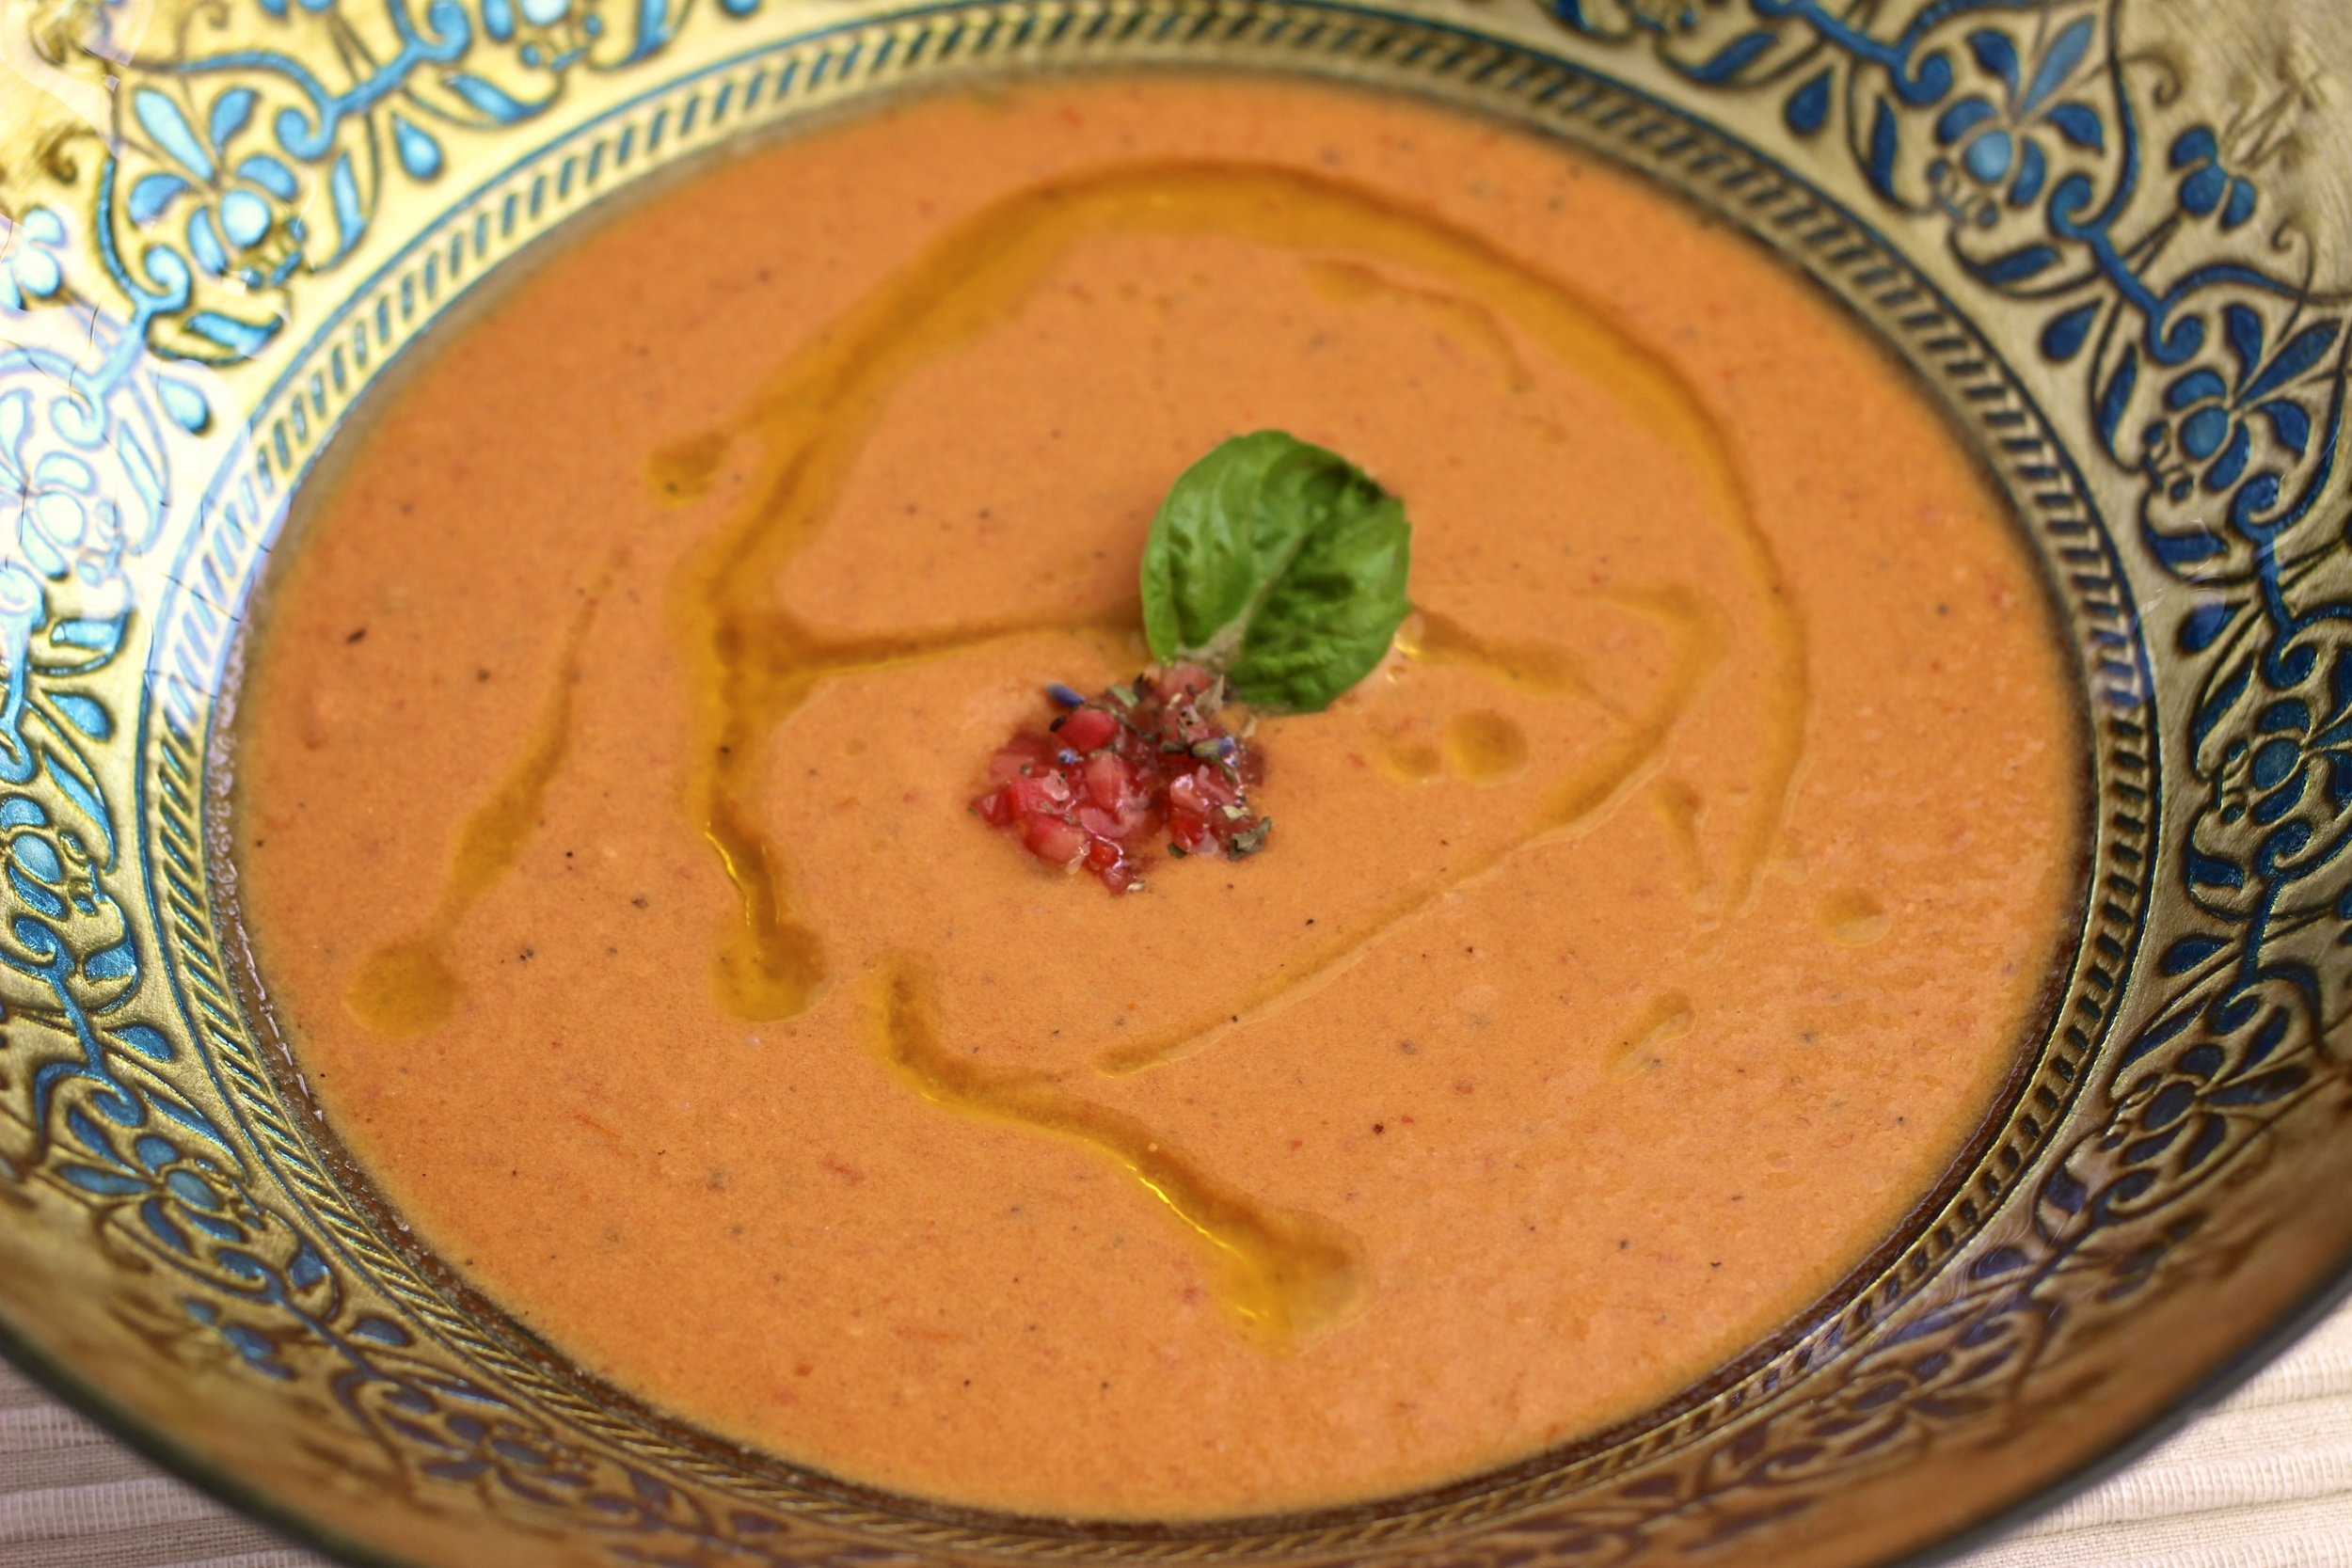 carriage house cooking school_lake placid ny_tomato soup_recipe_ncpr_npr.jpg